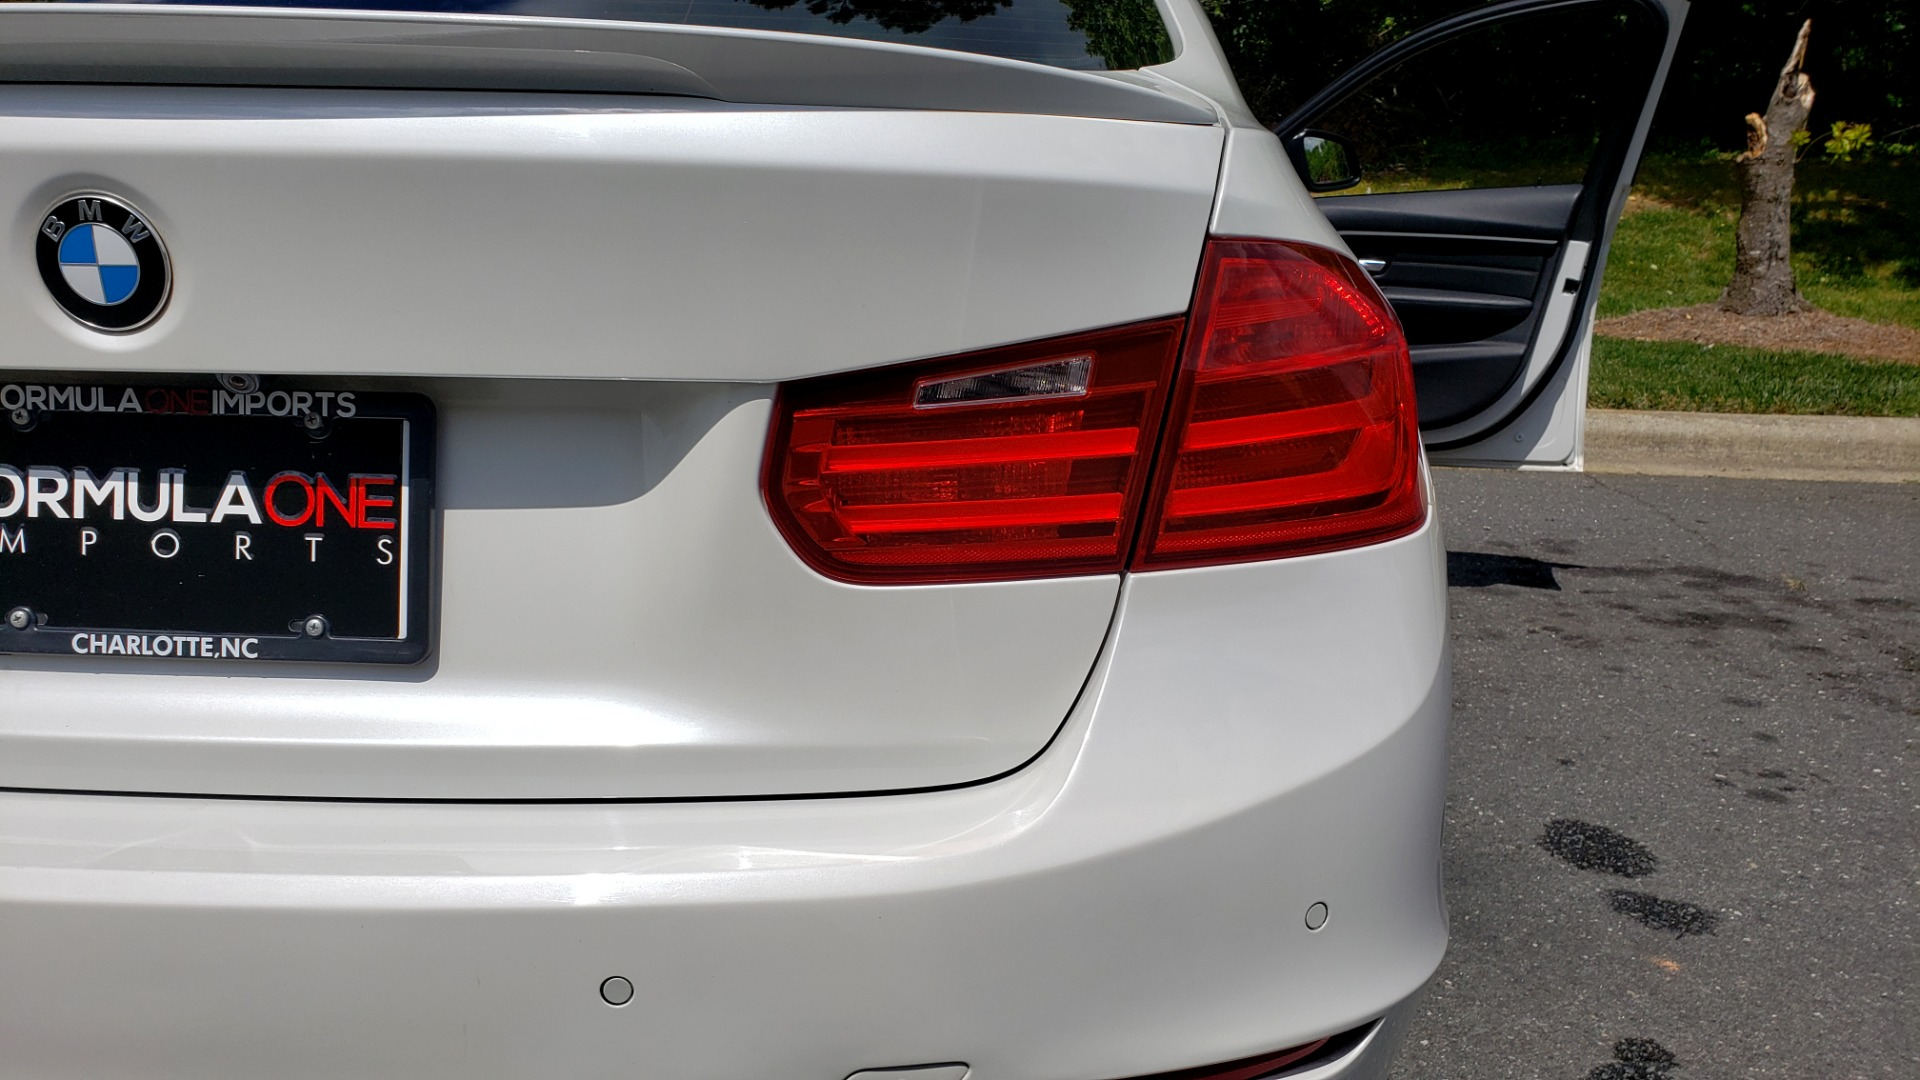 Used 2015 BMW 3 SERIES 328I PREMIUM / NAV / SUNROOF / HTD STS / DRIVER ASST / REARVIEW for sale Sold at Formula Imports in Charlotte NC 28227 27